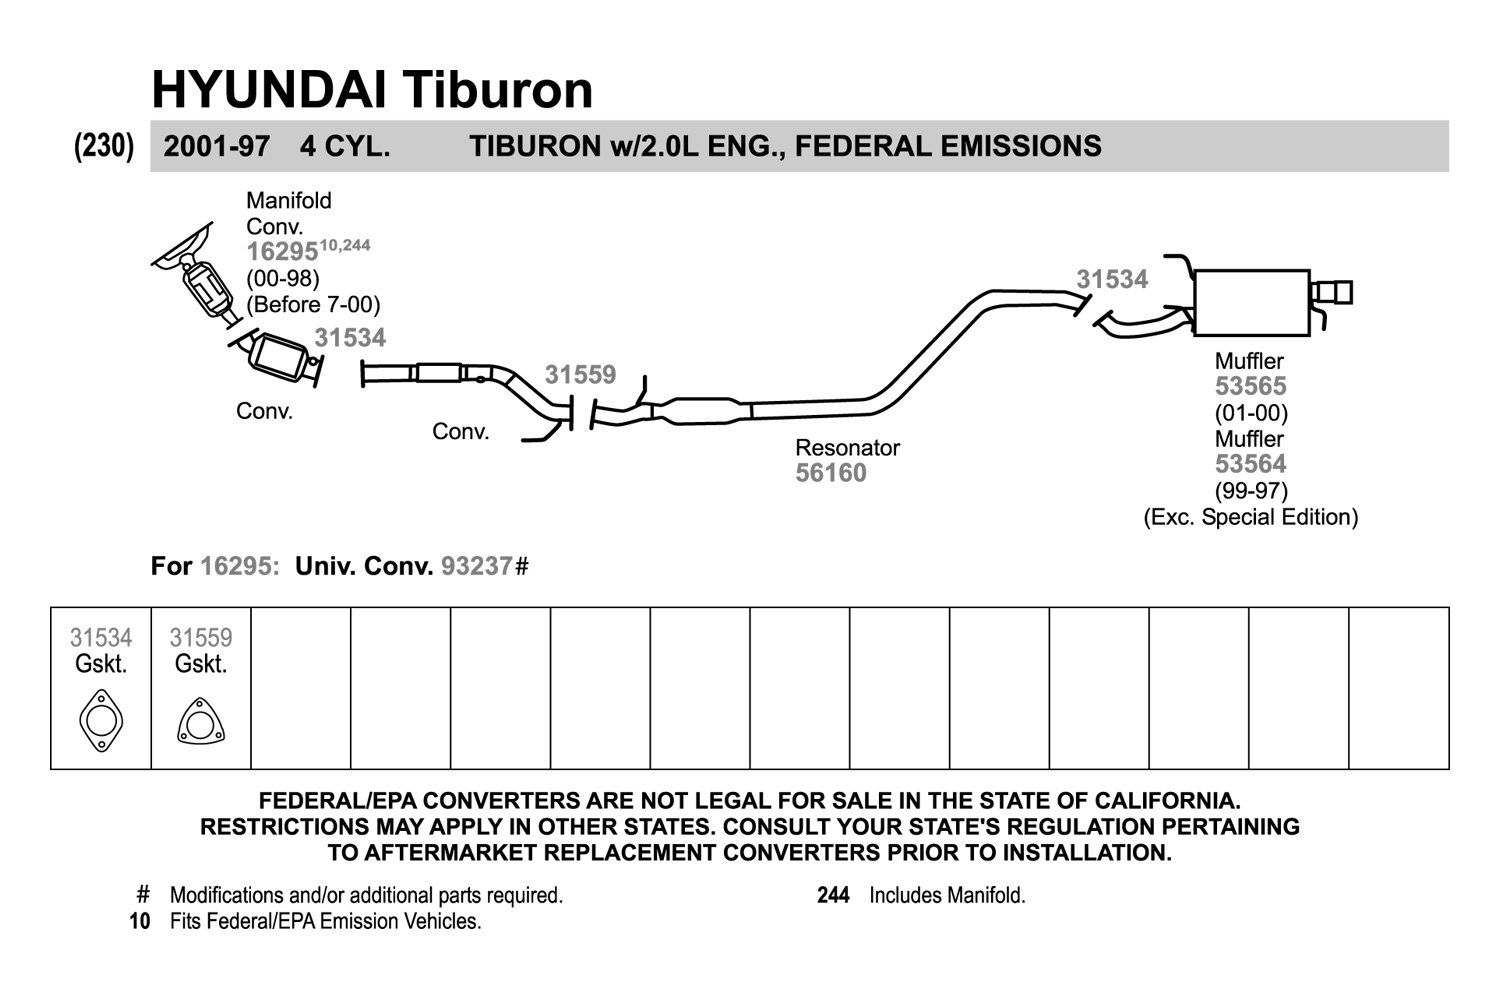 2003 Hyundai Accent Torque Converter Diagram Trusted Wiring X3 2001 Exhaust System Download Diagrams U2022 Small Engine